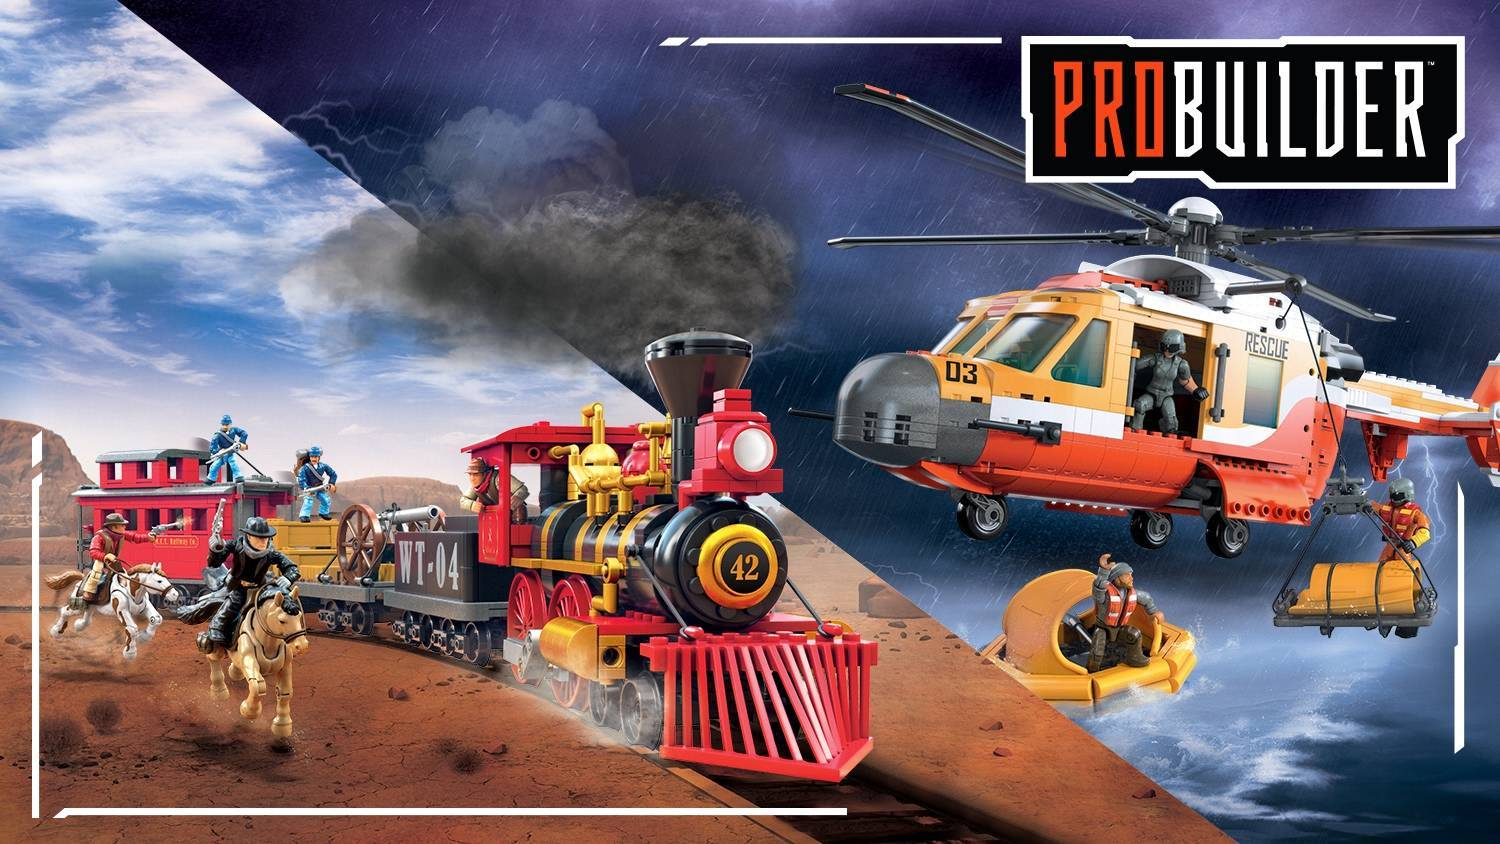 Probuilder sneak-peek: New sets coming this fall!